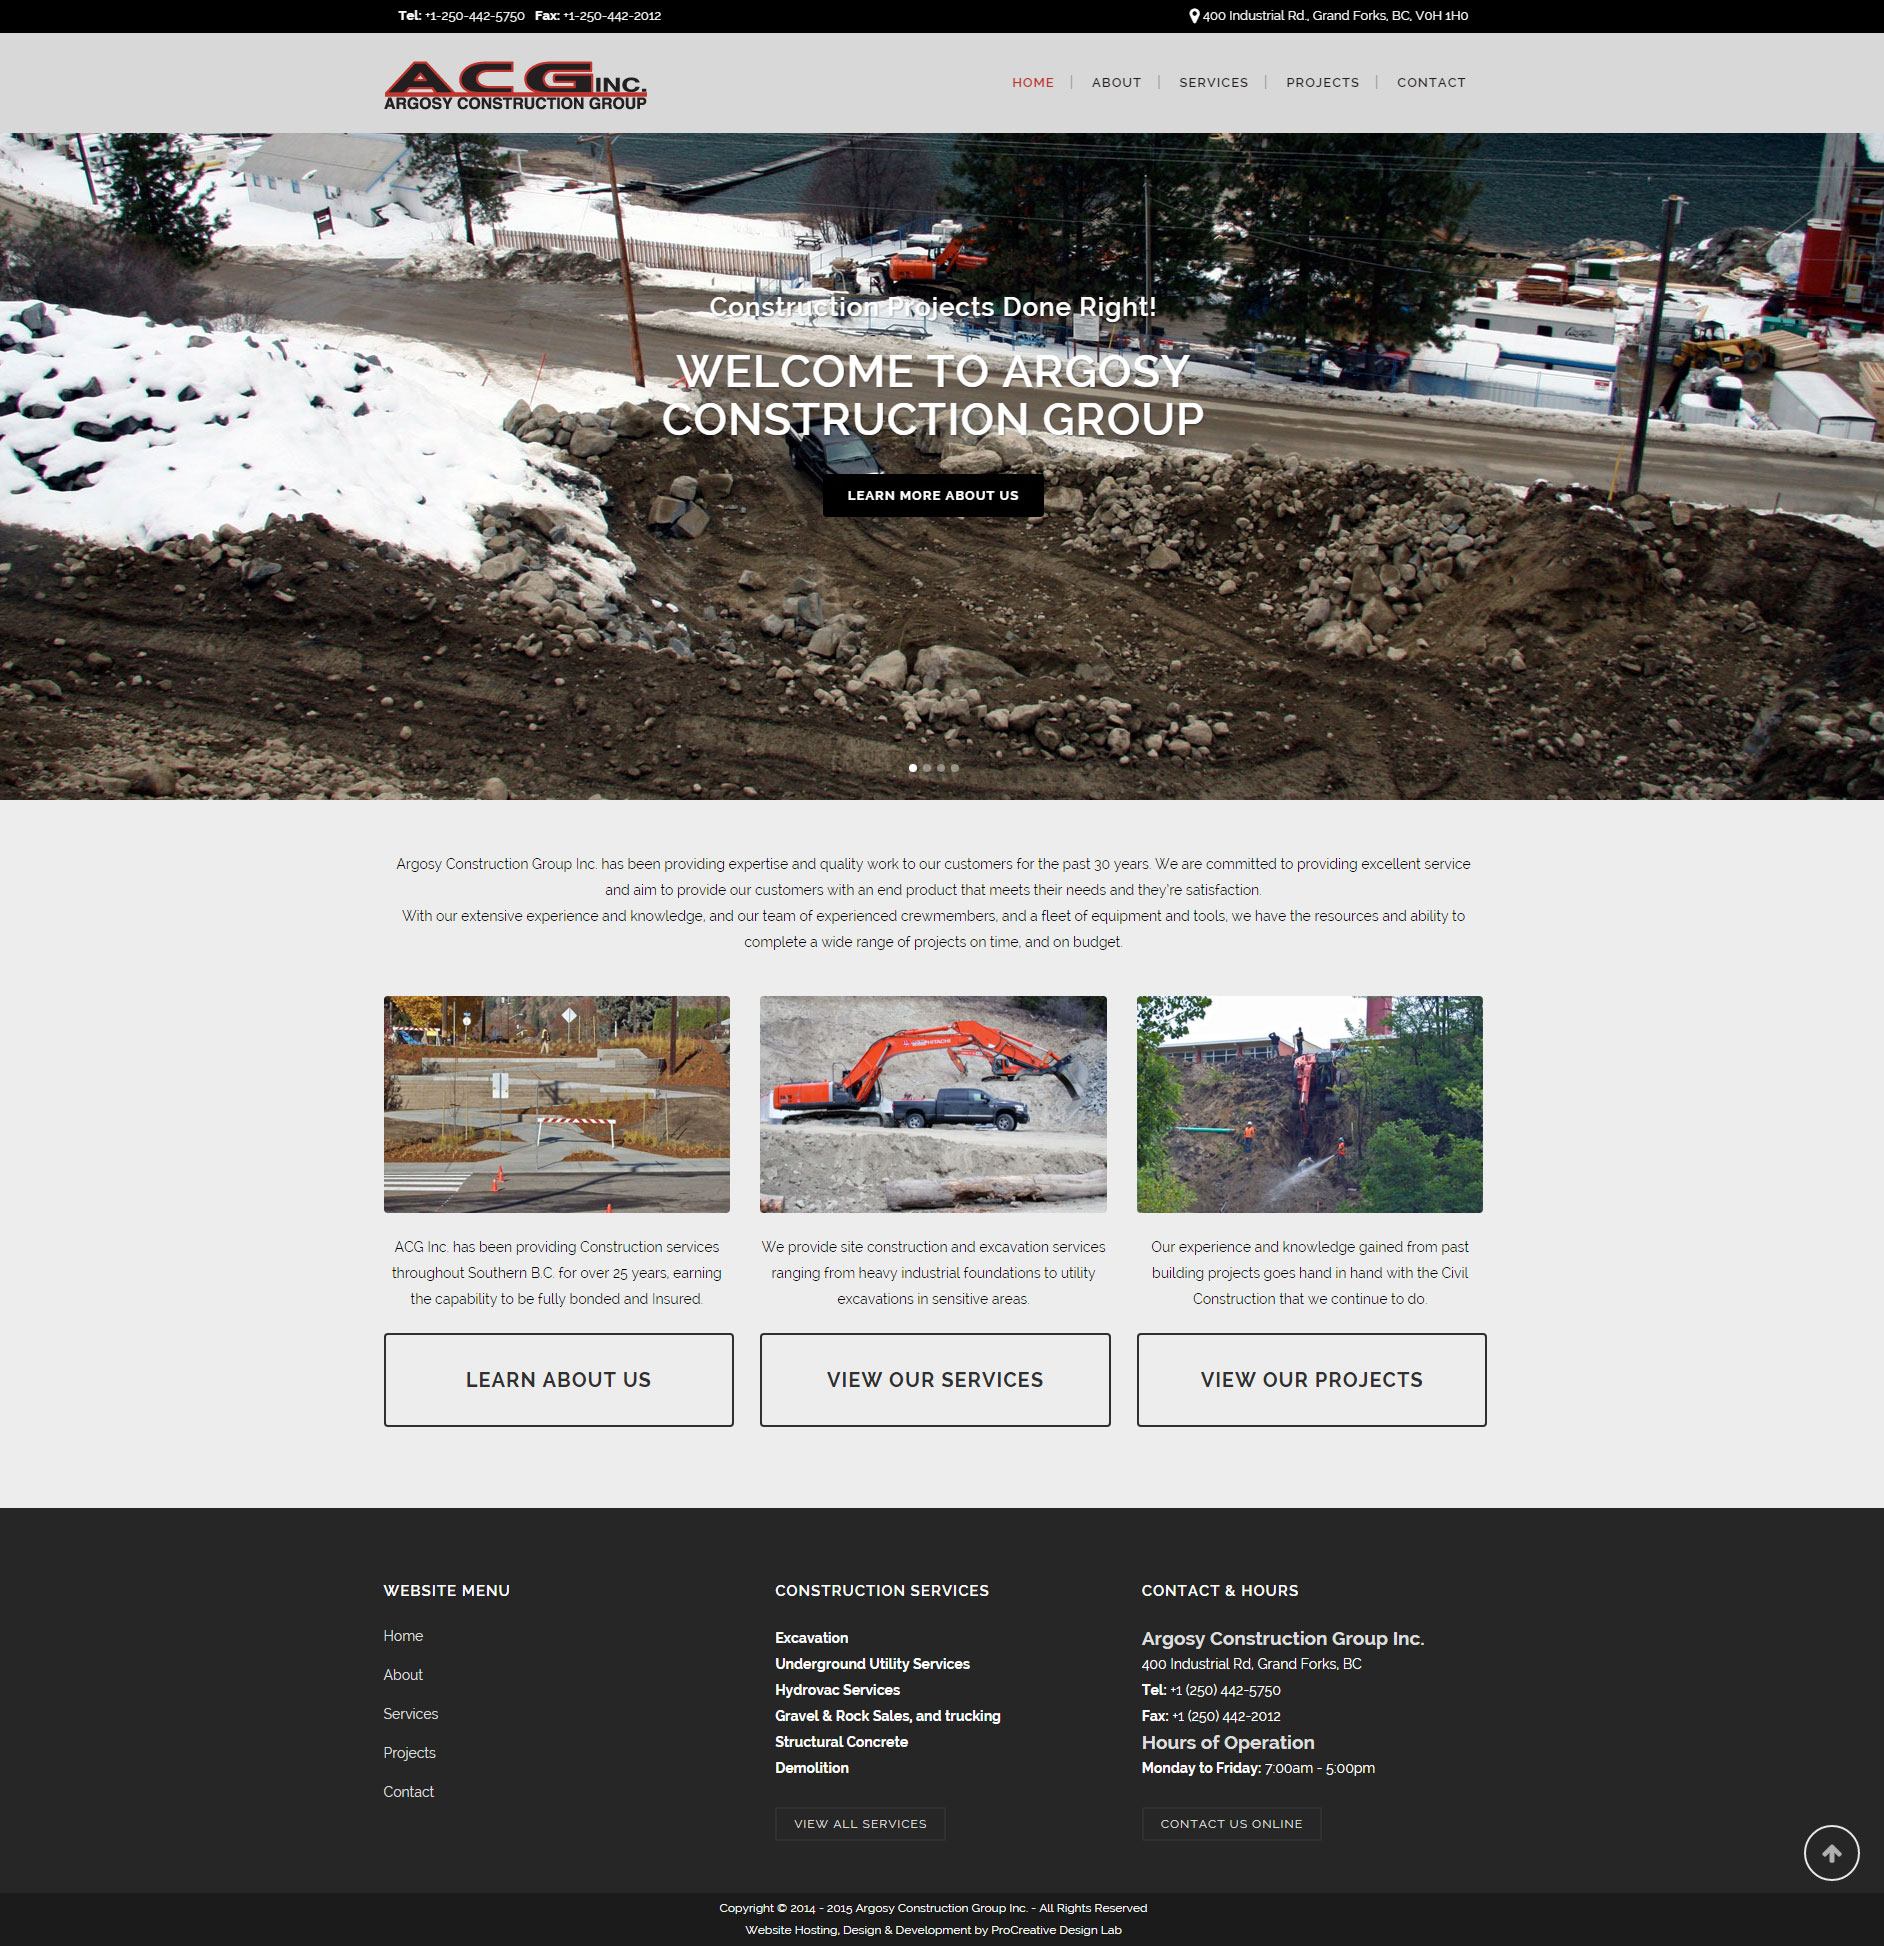 Argosy Construction Group Inc